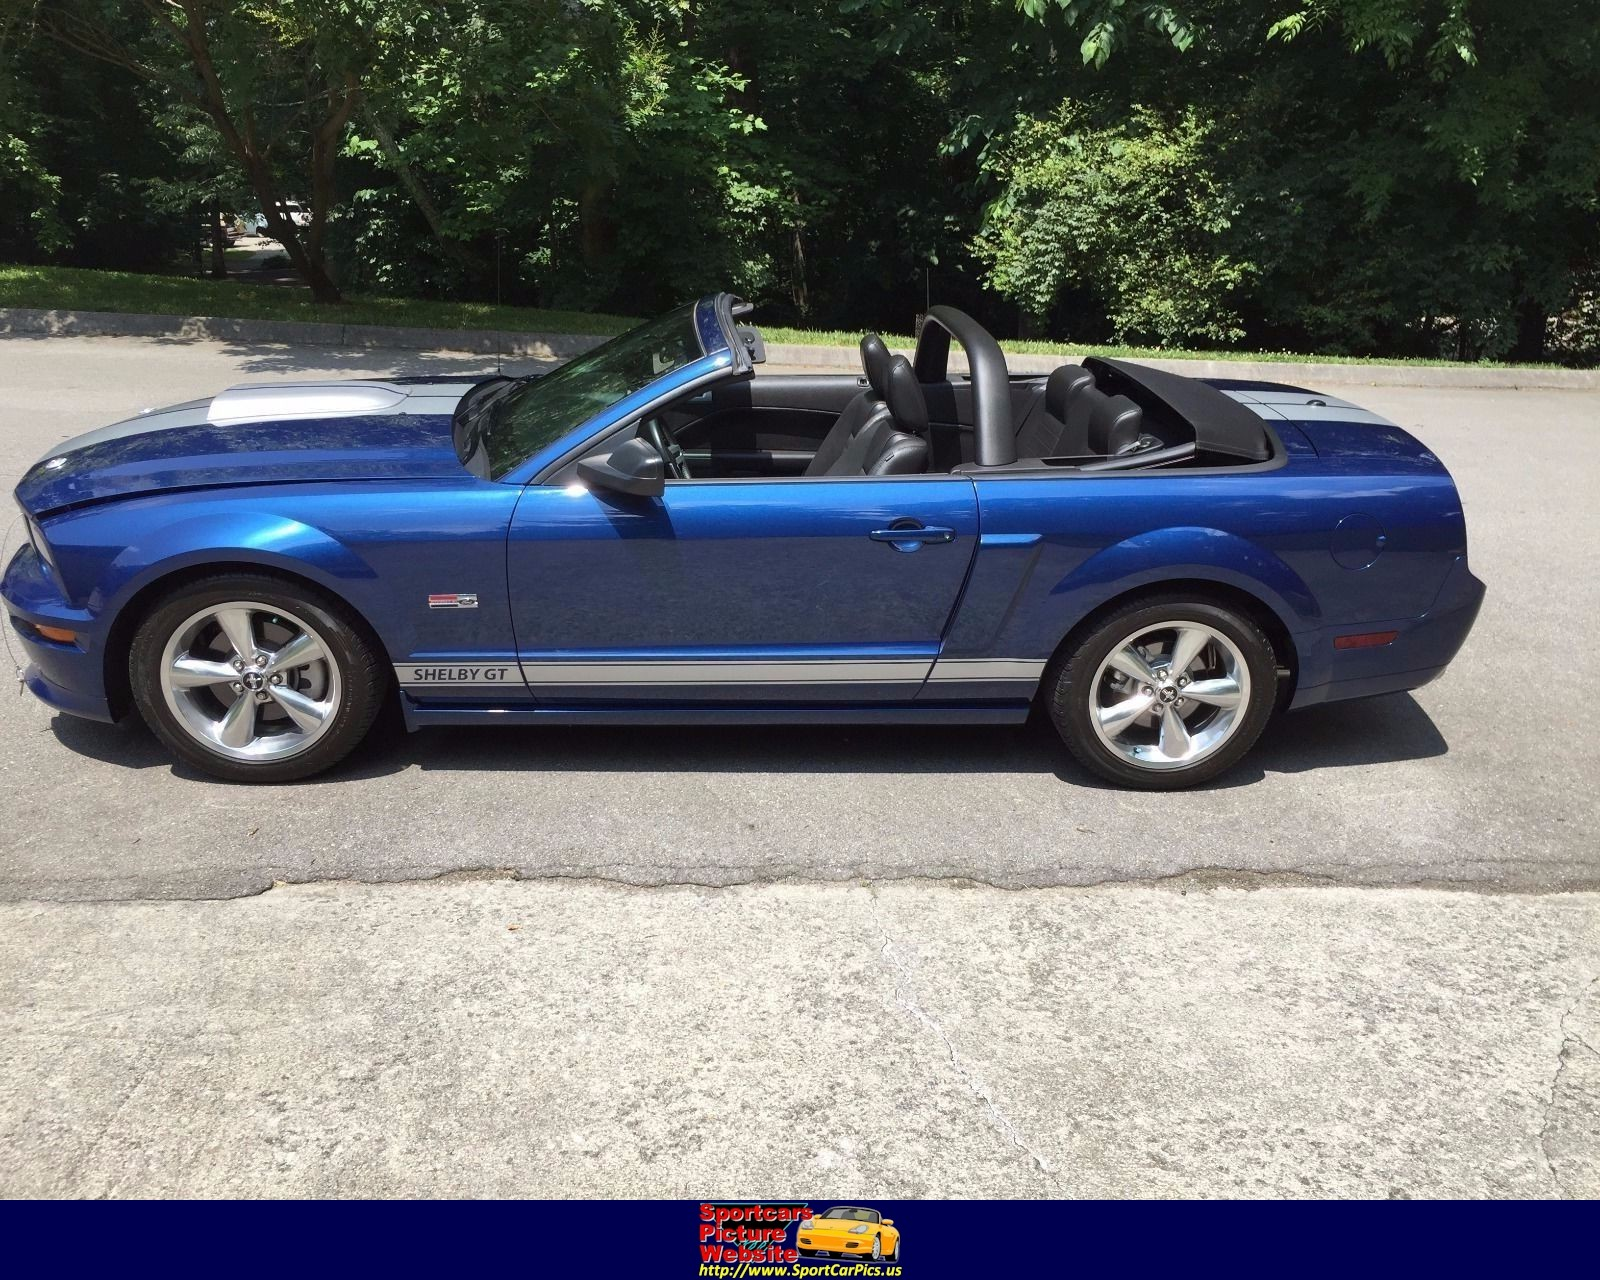 Ford Mustang - ID: 224837